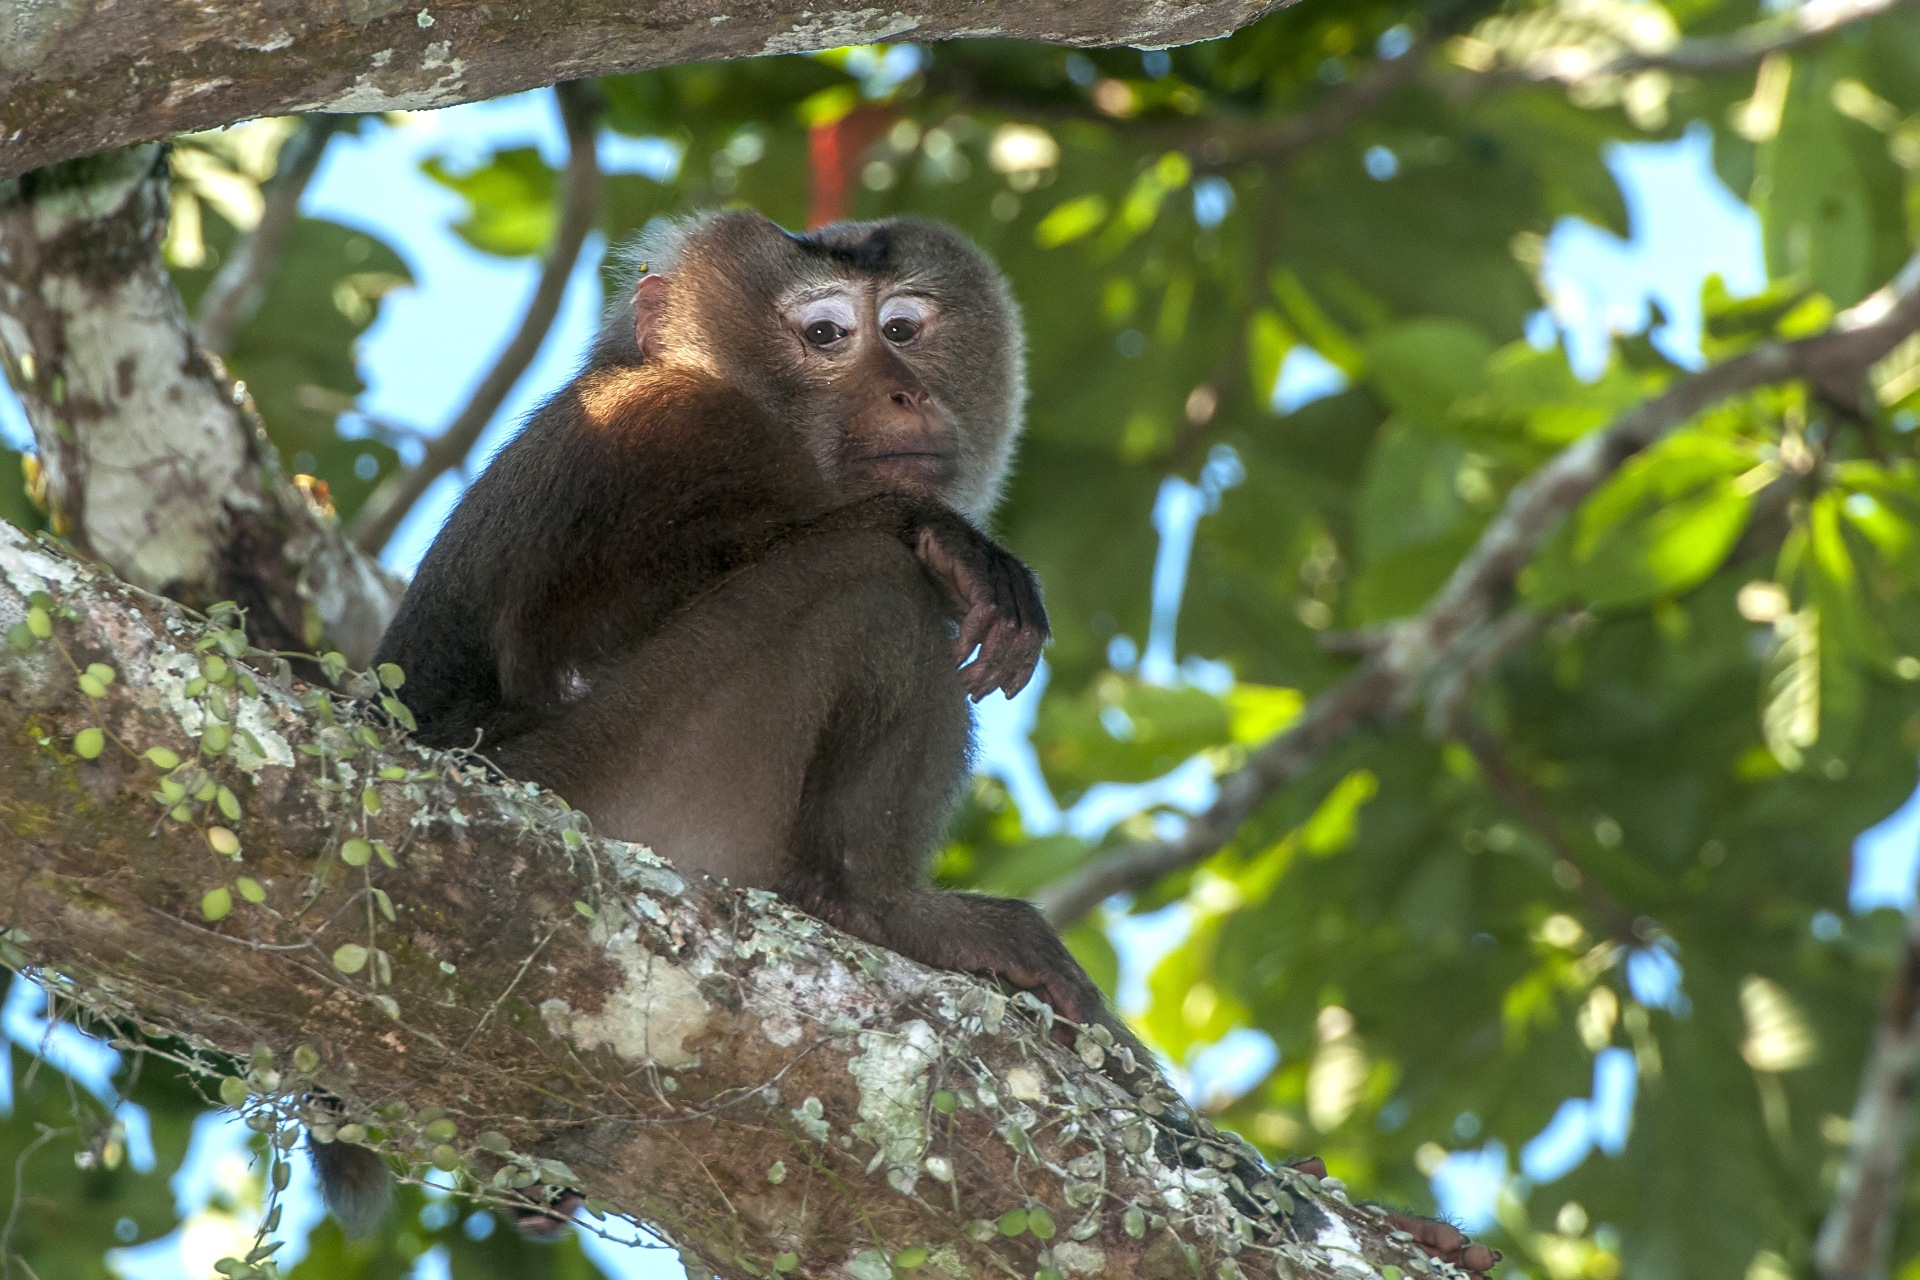 The macaques have olive brown fur all over their body, except their undersides, which are white. Photo: Udayan Borthakur